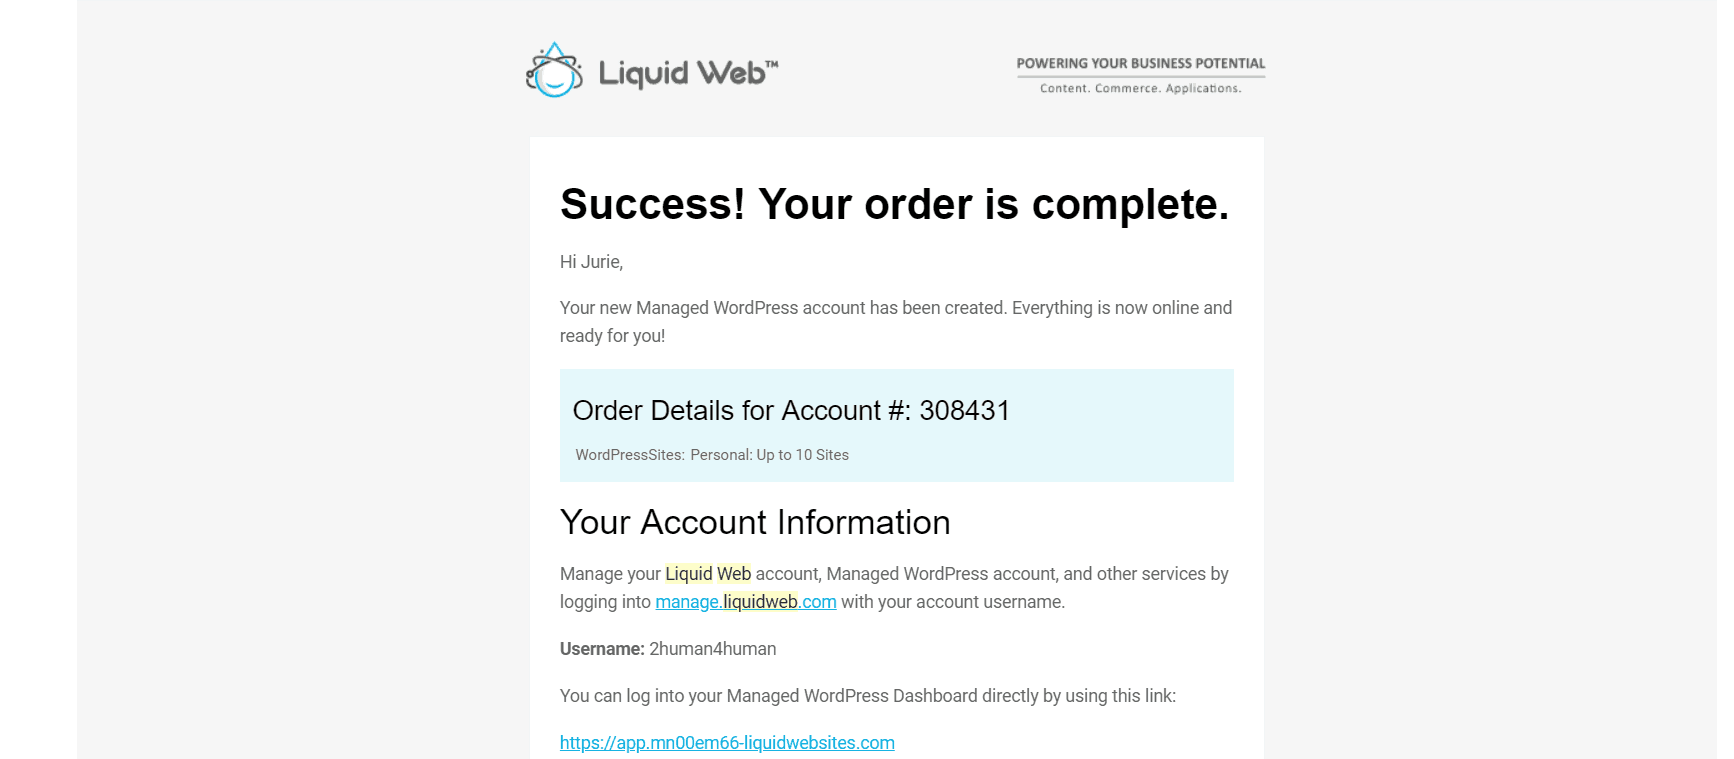 How-to-Create-a-New-Account-with-Liquid-Web-image10